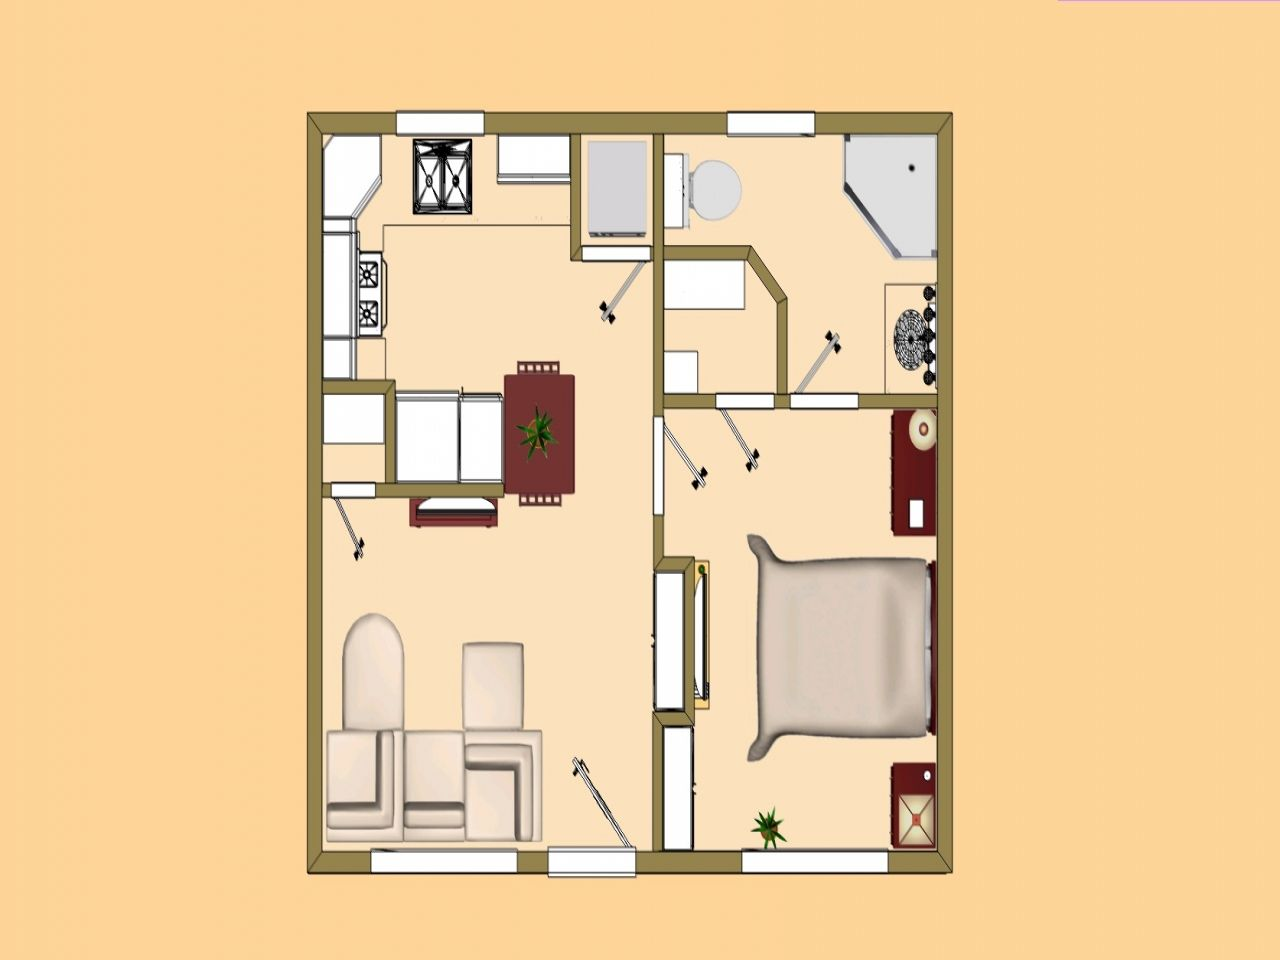 500 Sf House Plans Uk Small 400 Sq Ft To Under Less Than Square 13 Charming Idea Feet Home Cottage Floor Plans House Plans House Floor Plans